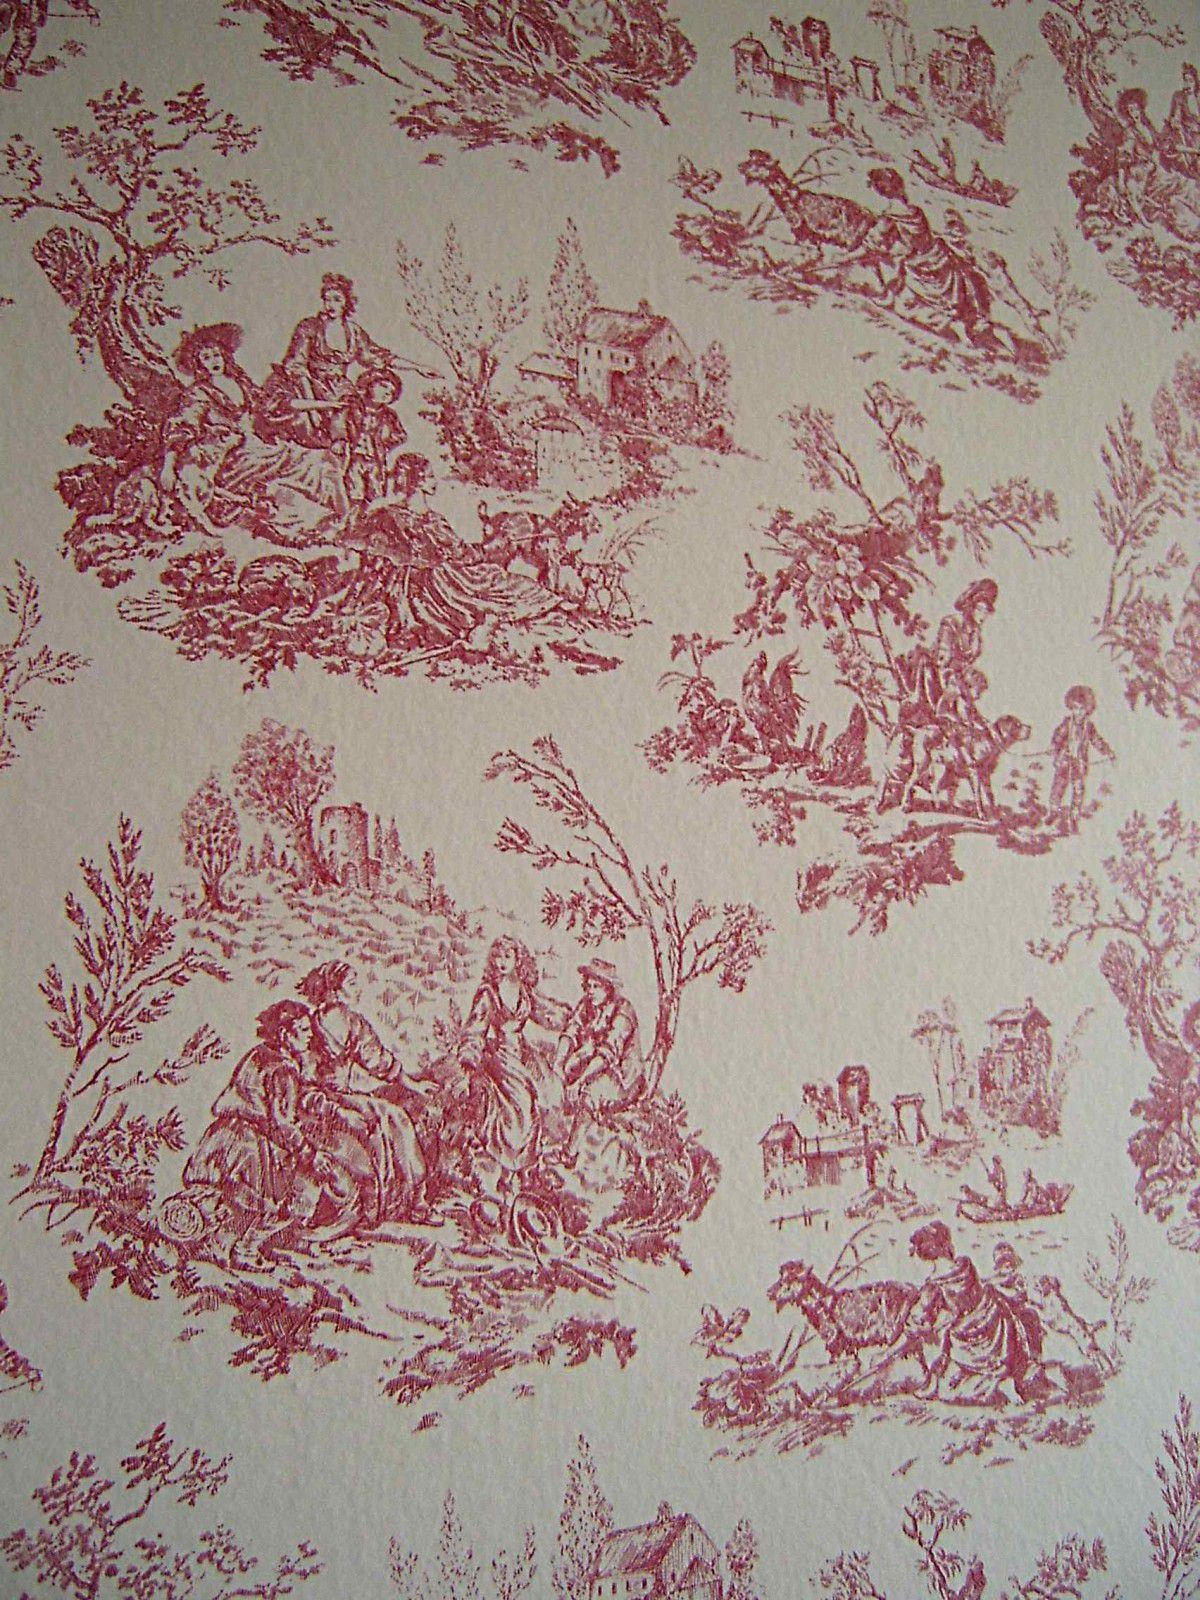 papier peint toile de jouy gris papier peint toile de jouy equipo drt andantino papier peint. Black Bedroom Furniture Sets. Home Design Ideas